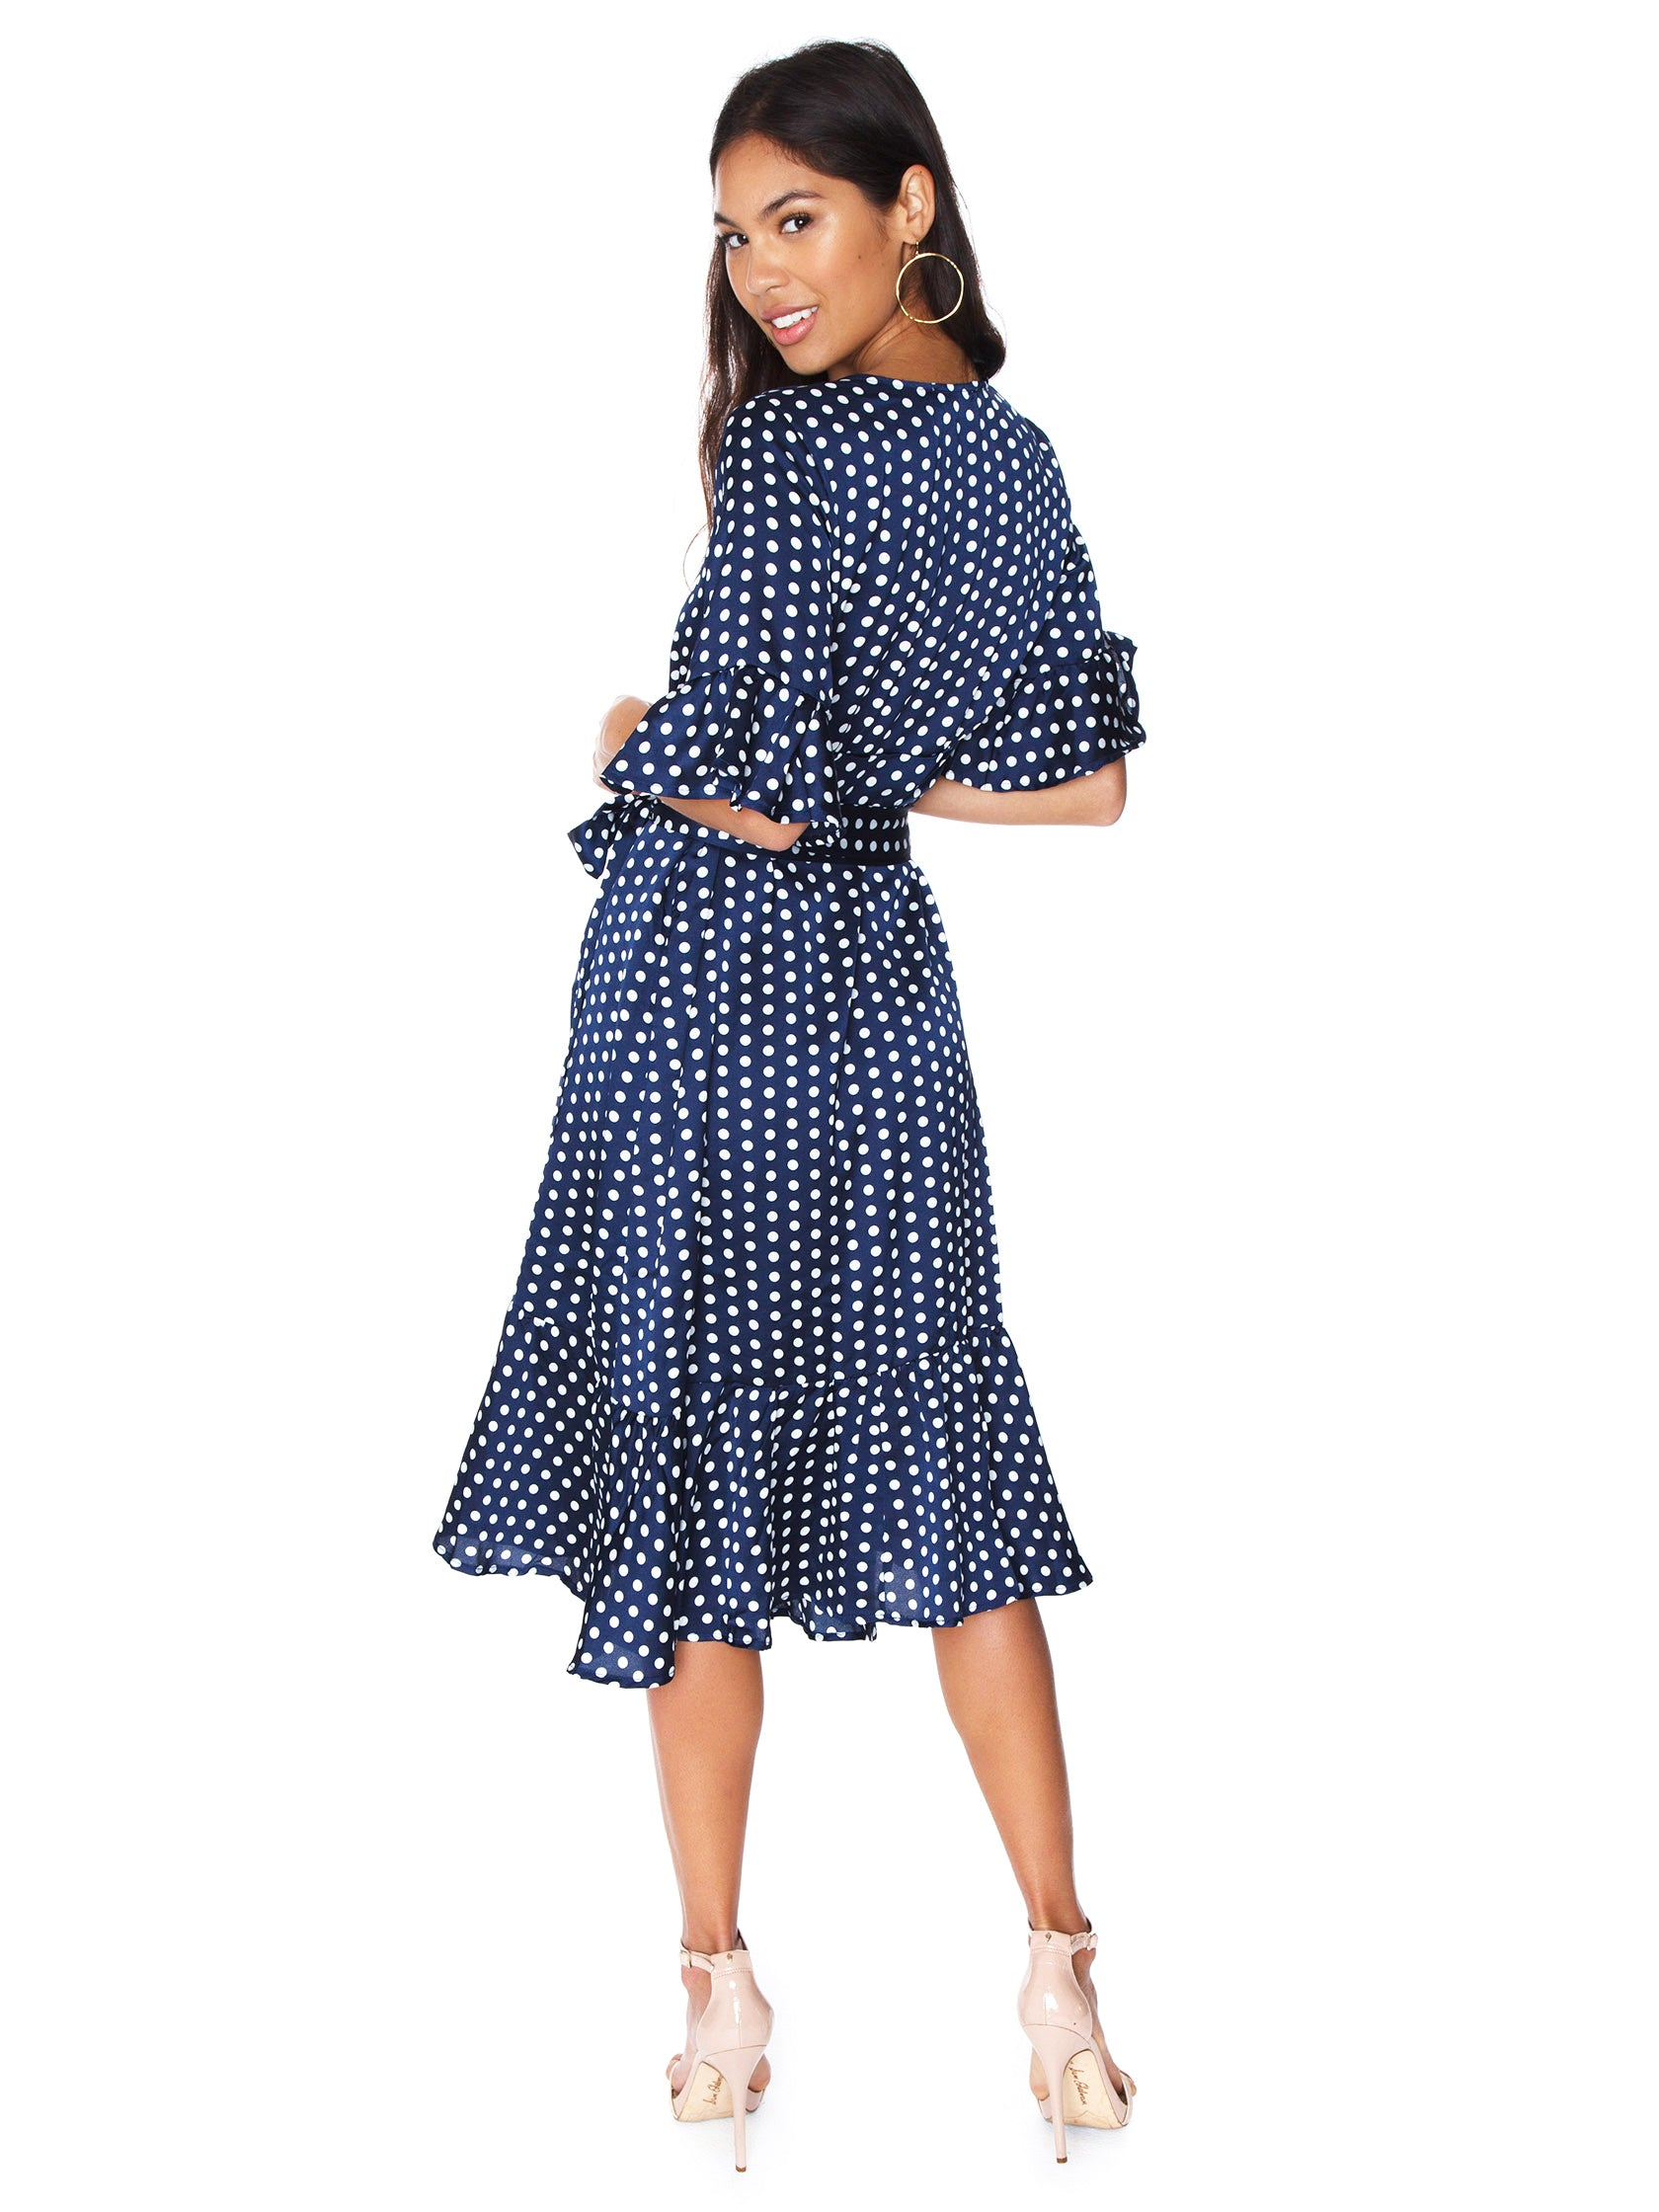 Women wearing a dress rental from Line & Dot called Elsie Ruffle Wrap Dress